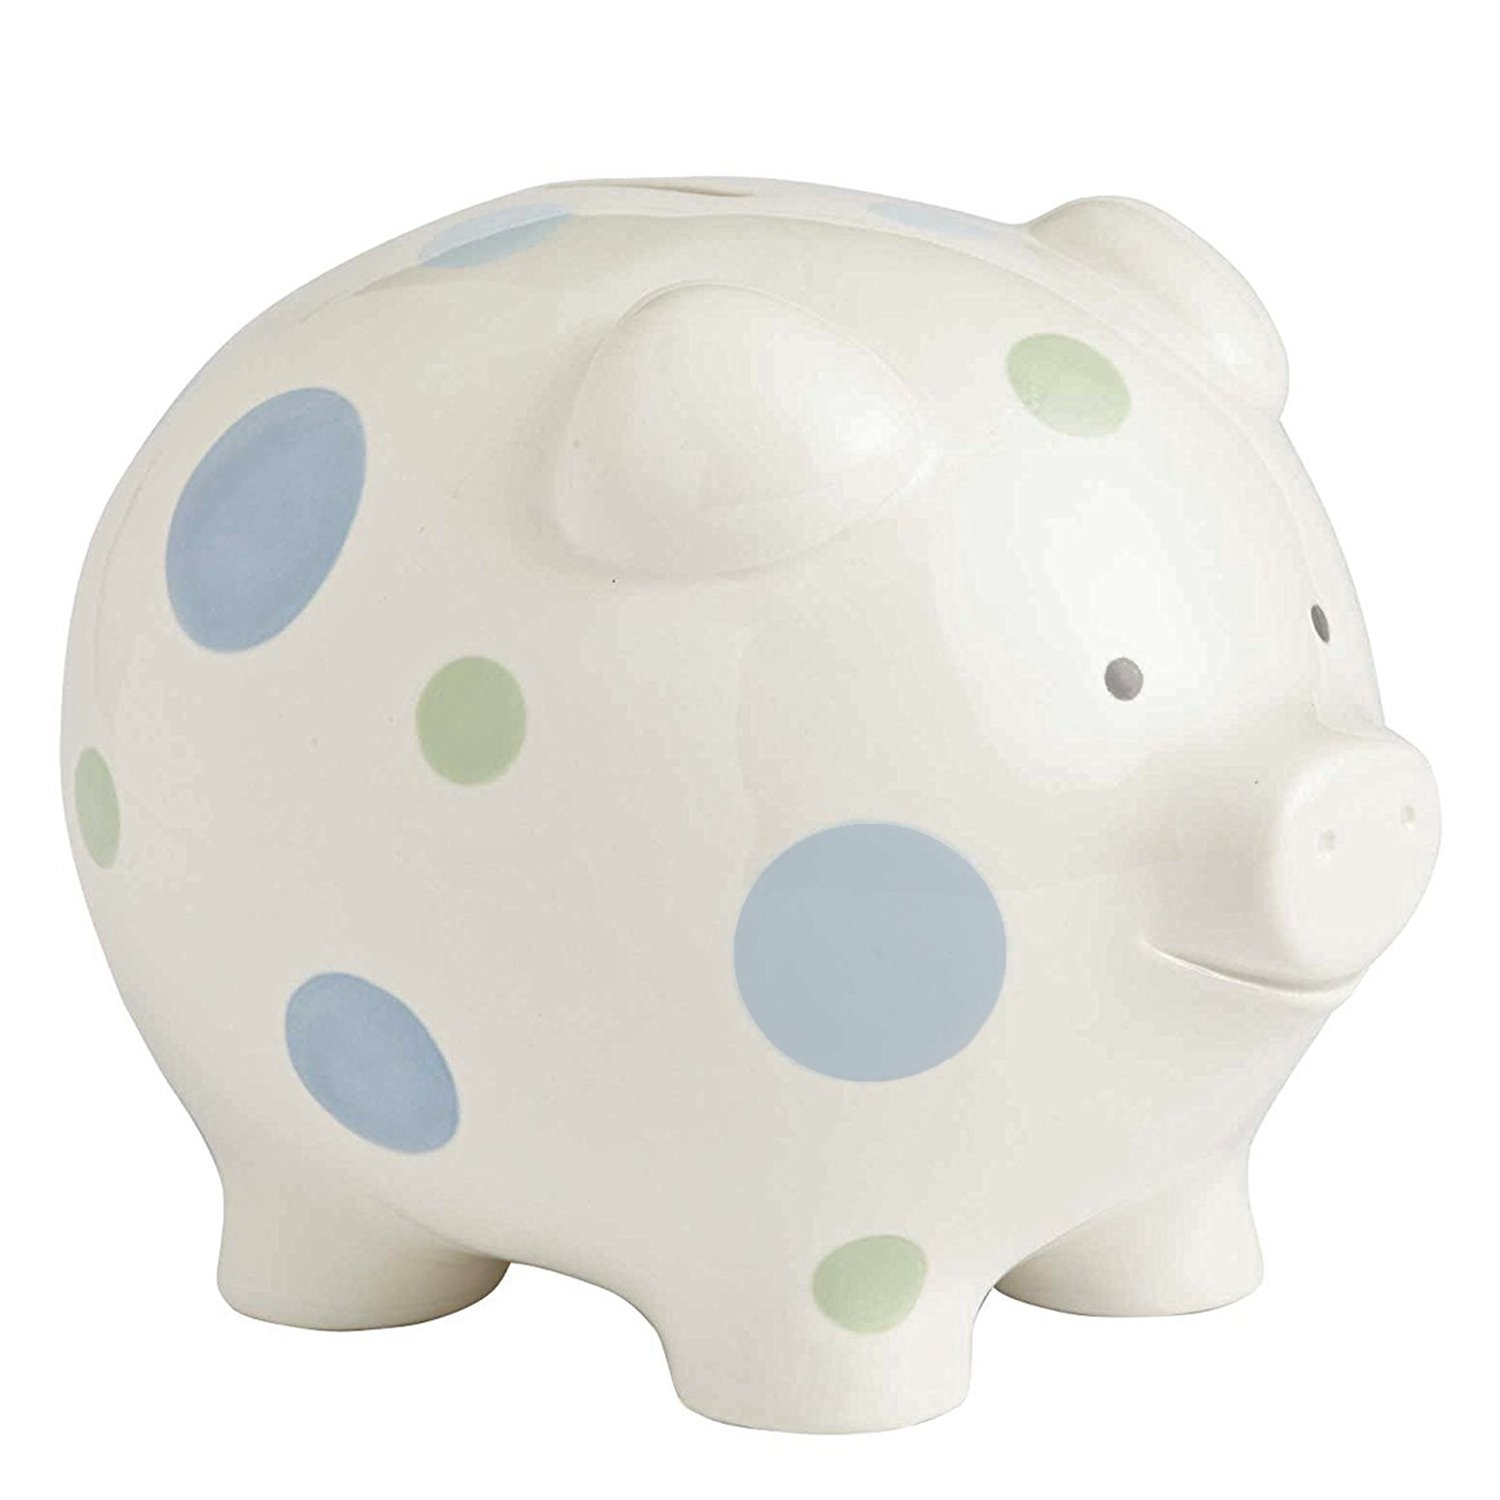 Beginnings Big Polka Dot Piggy Bank, 7 inches, Blue, A fu...